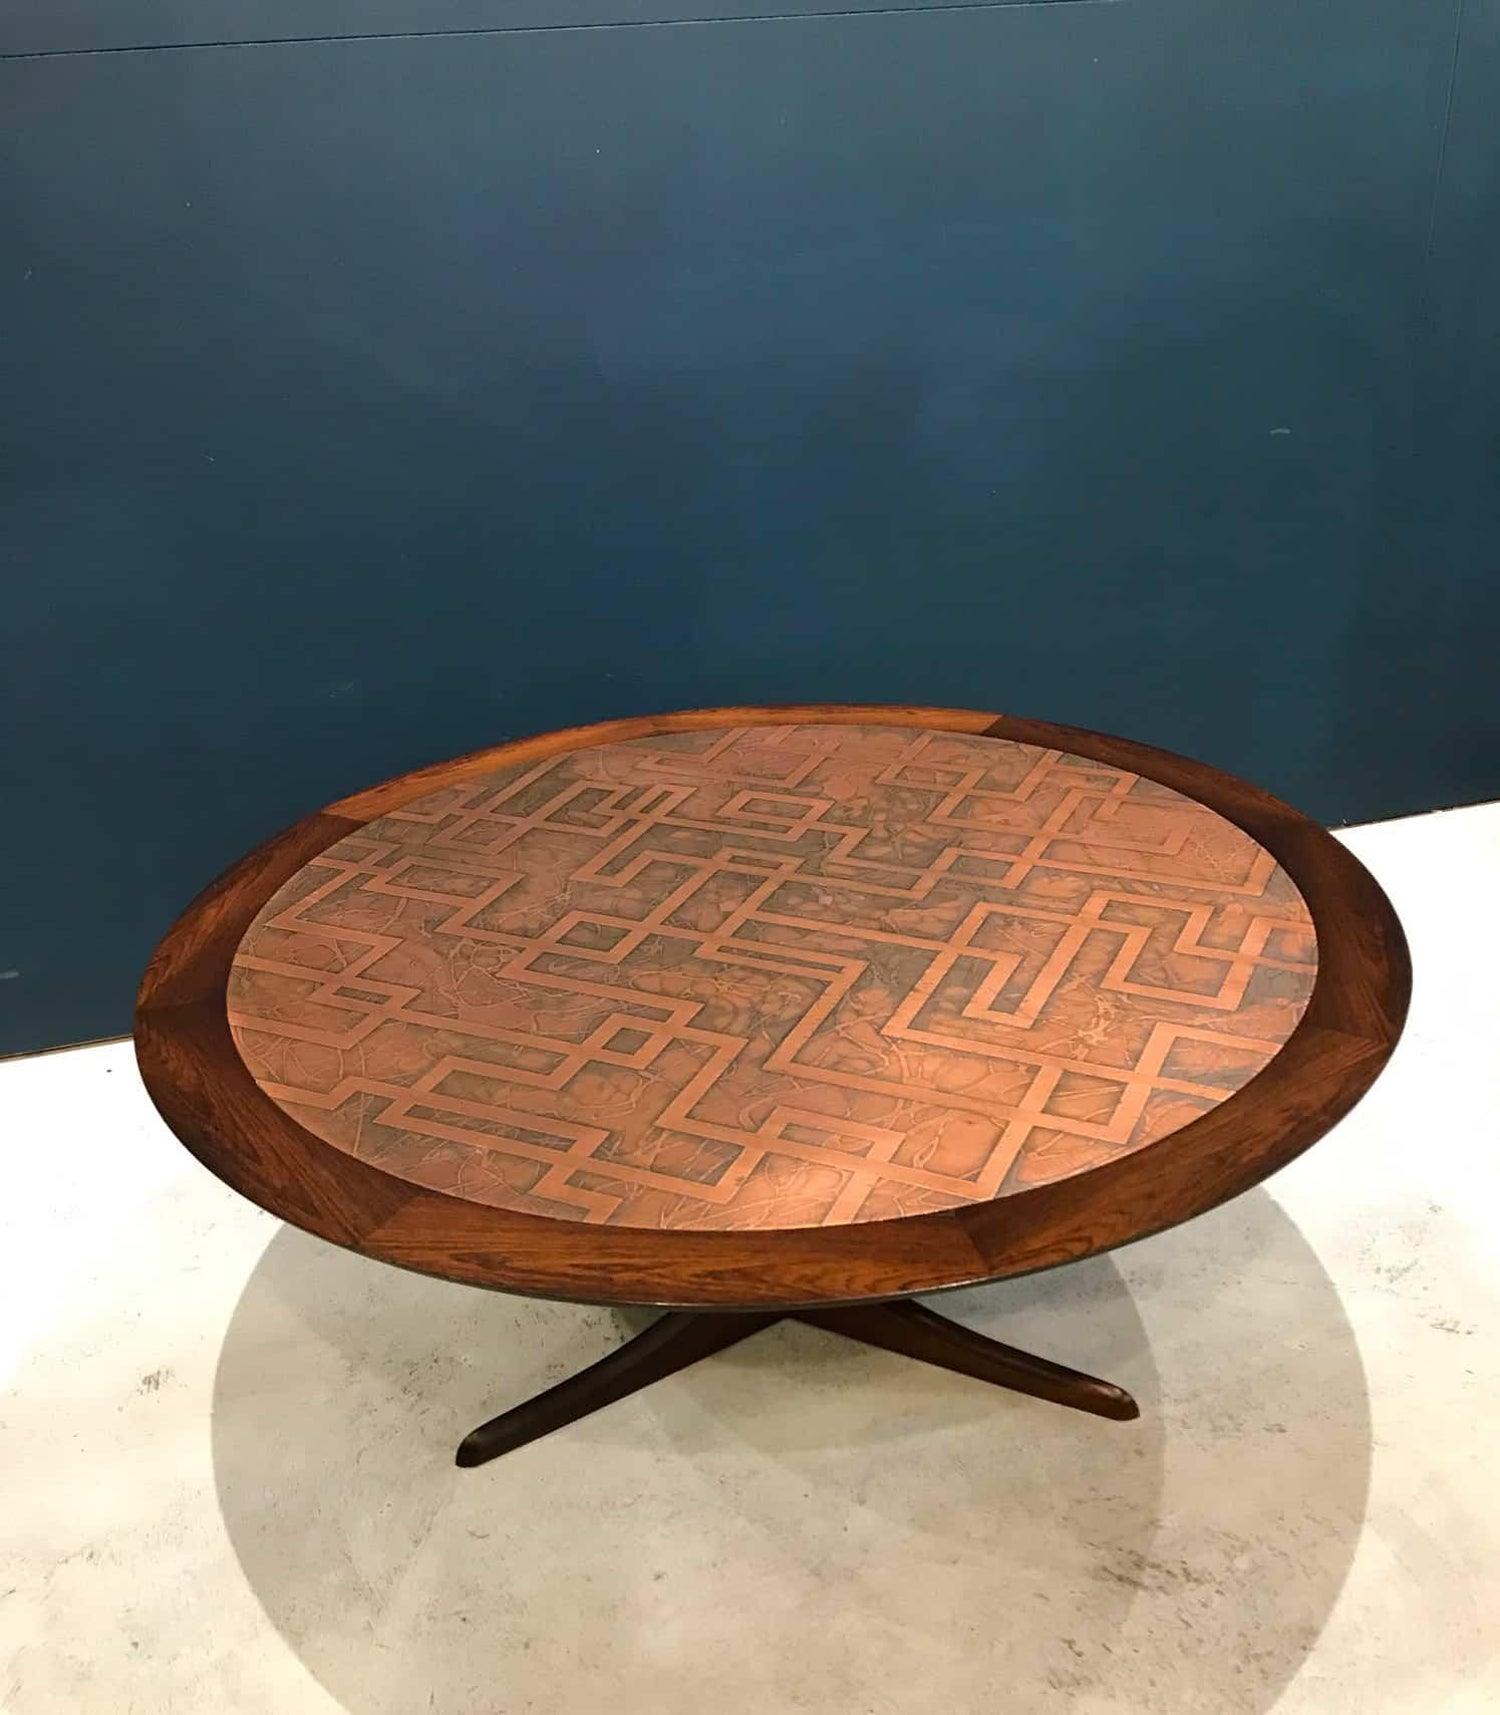 Awe Inspiring Mid Century Modern Copper And Hardwood Coffee Table Andrewgaddart Wooden Chair Designs For Living Room Andrewgaddartcom